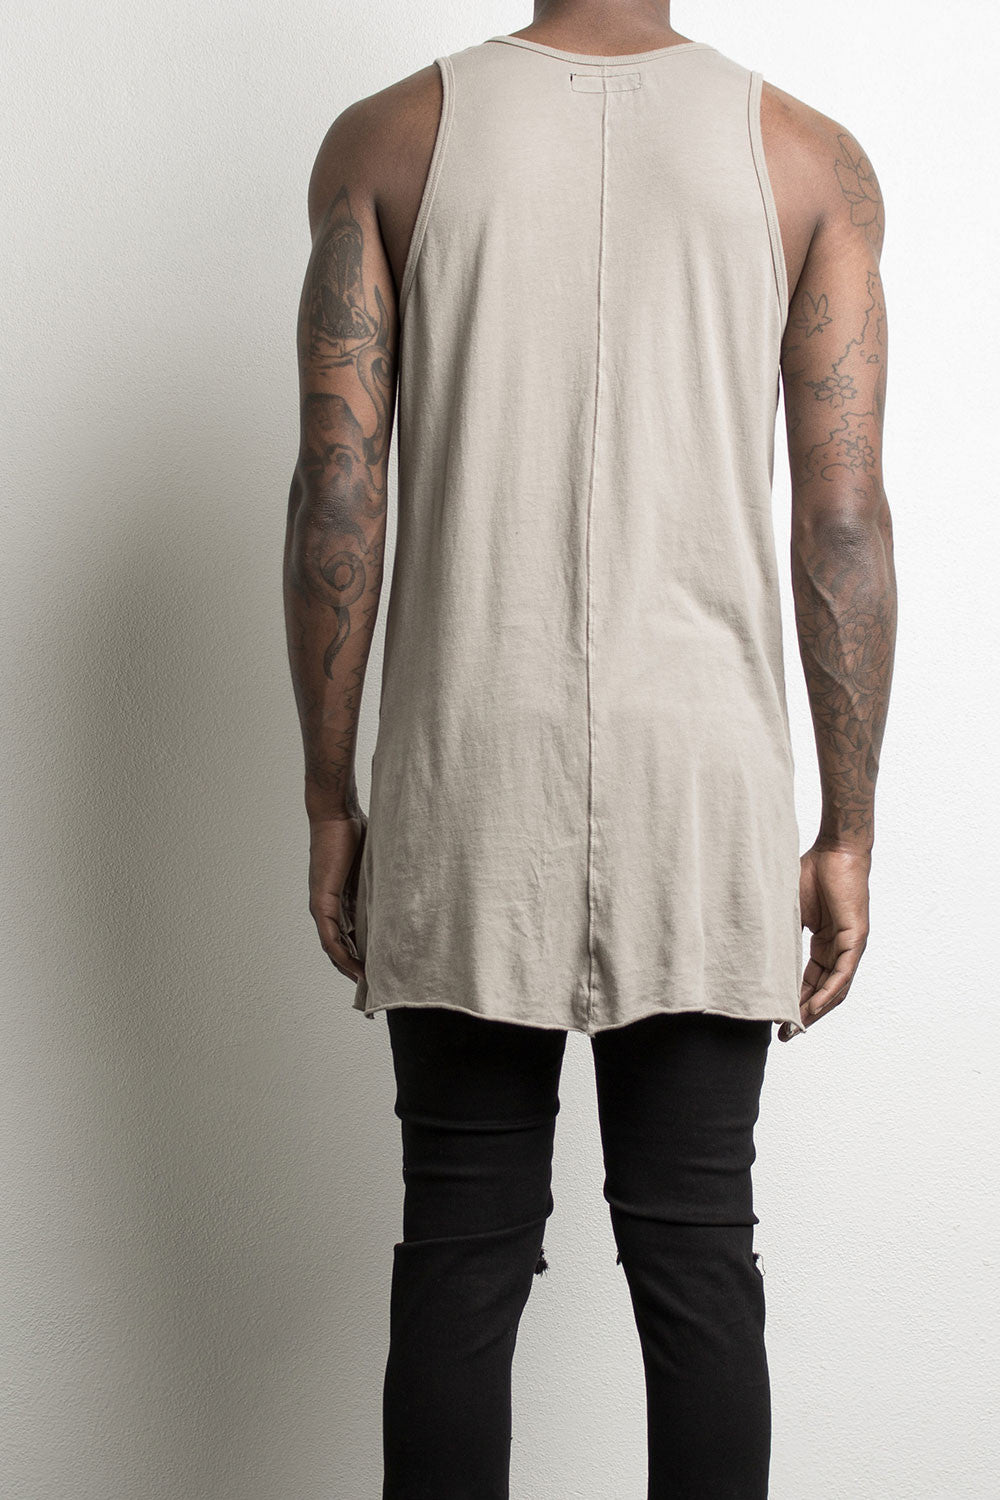 loose tank top by daniel patrick in wheat